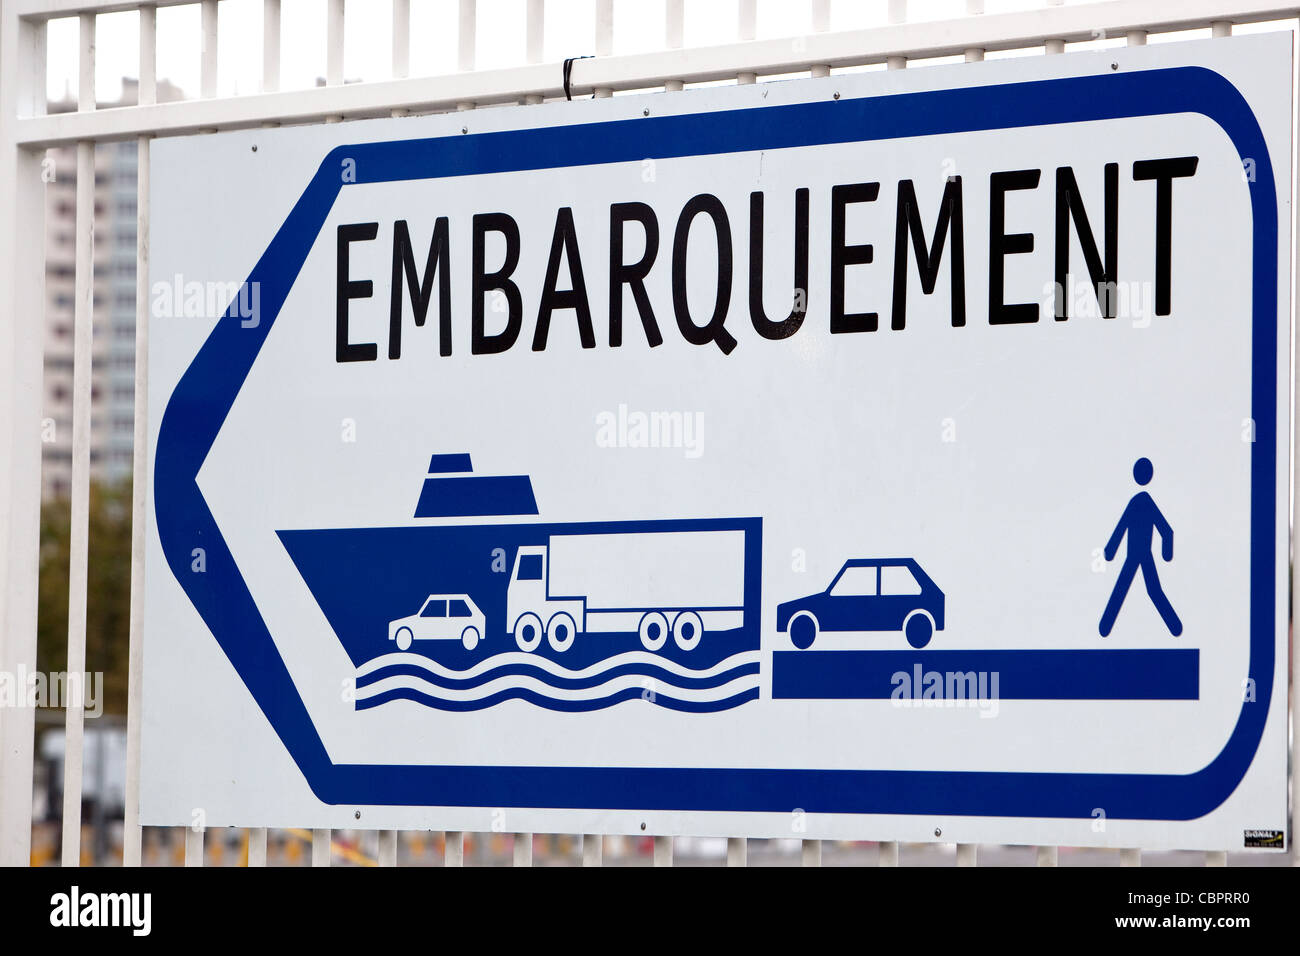 Embarkation sign for ferries at the port of Toulon France - Stock Image